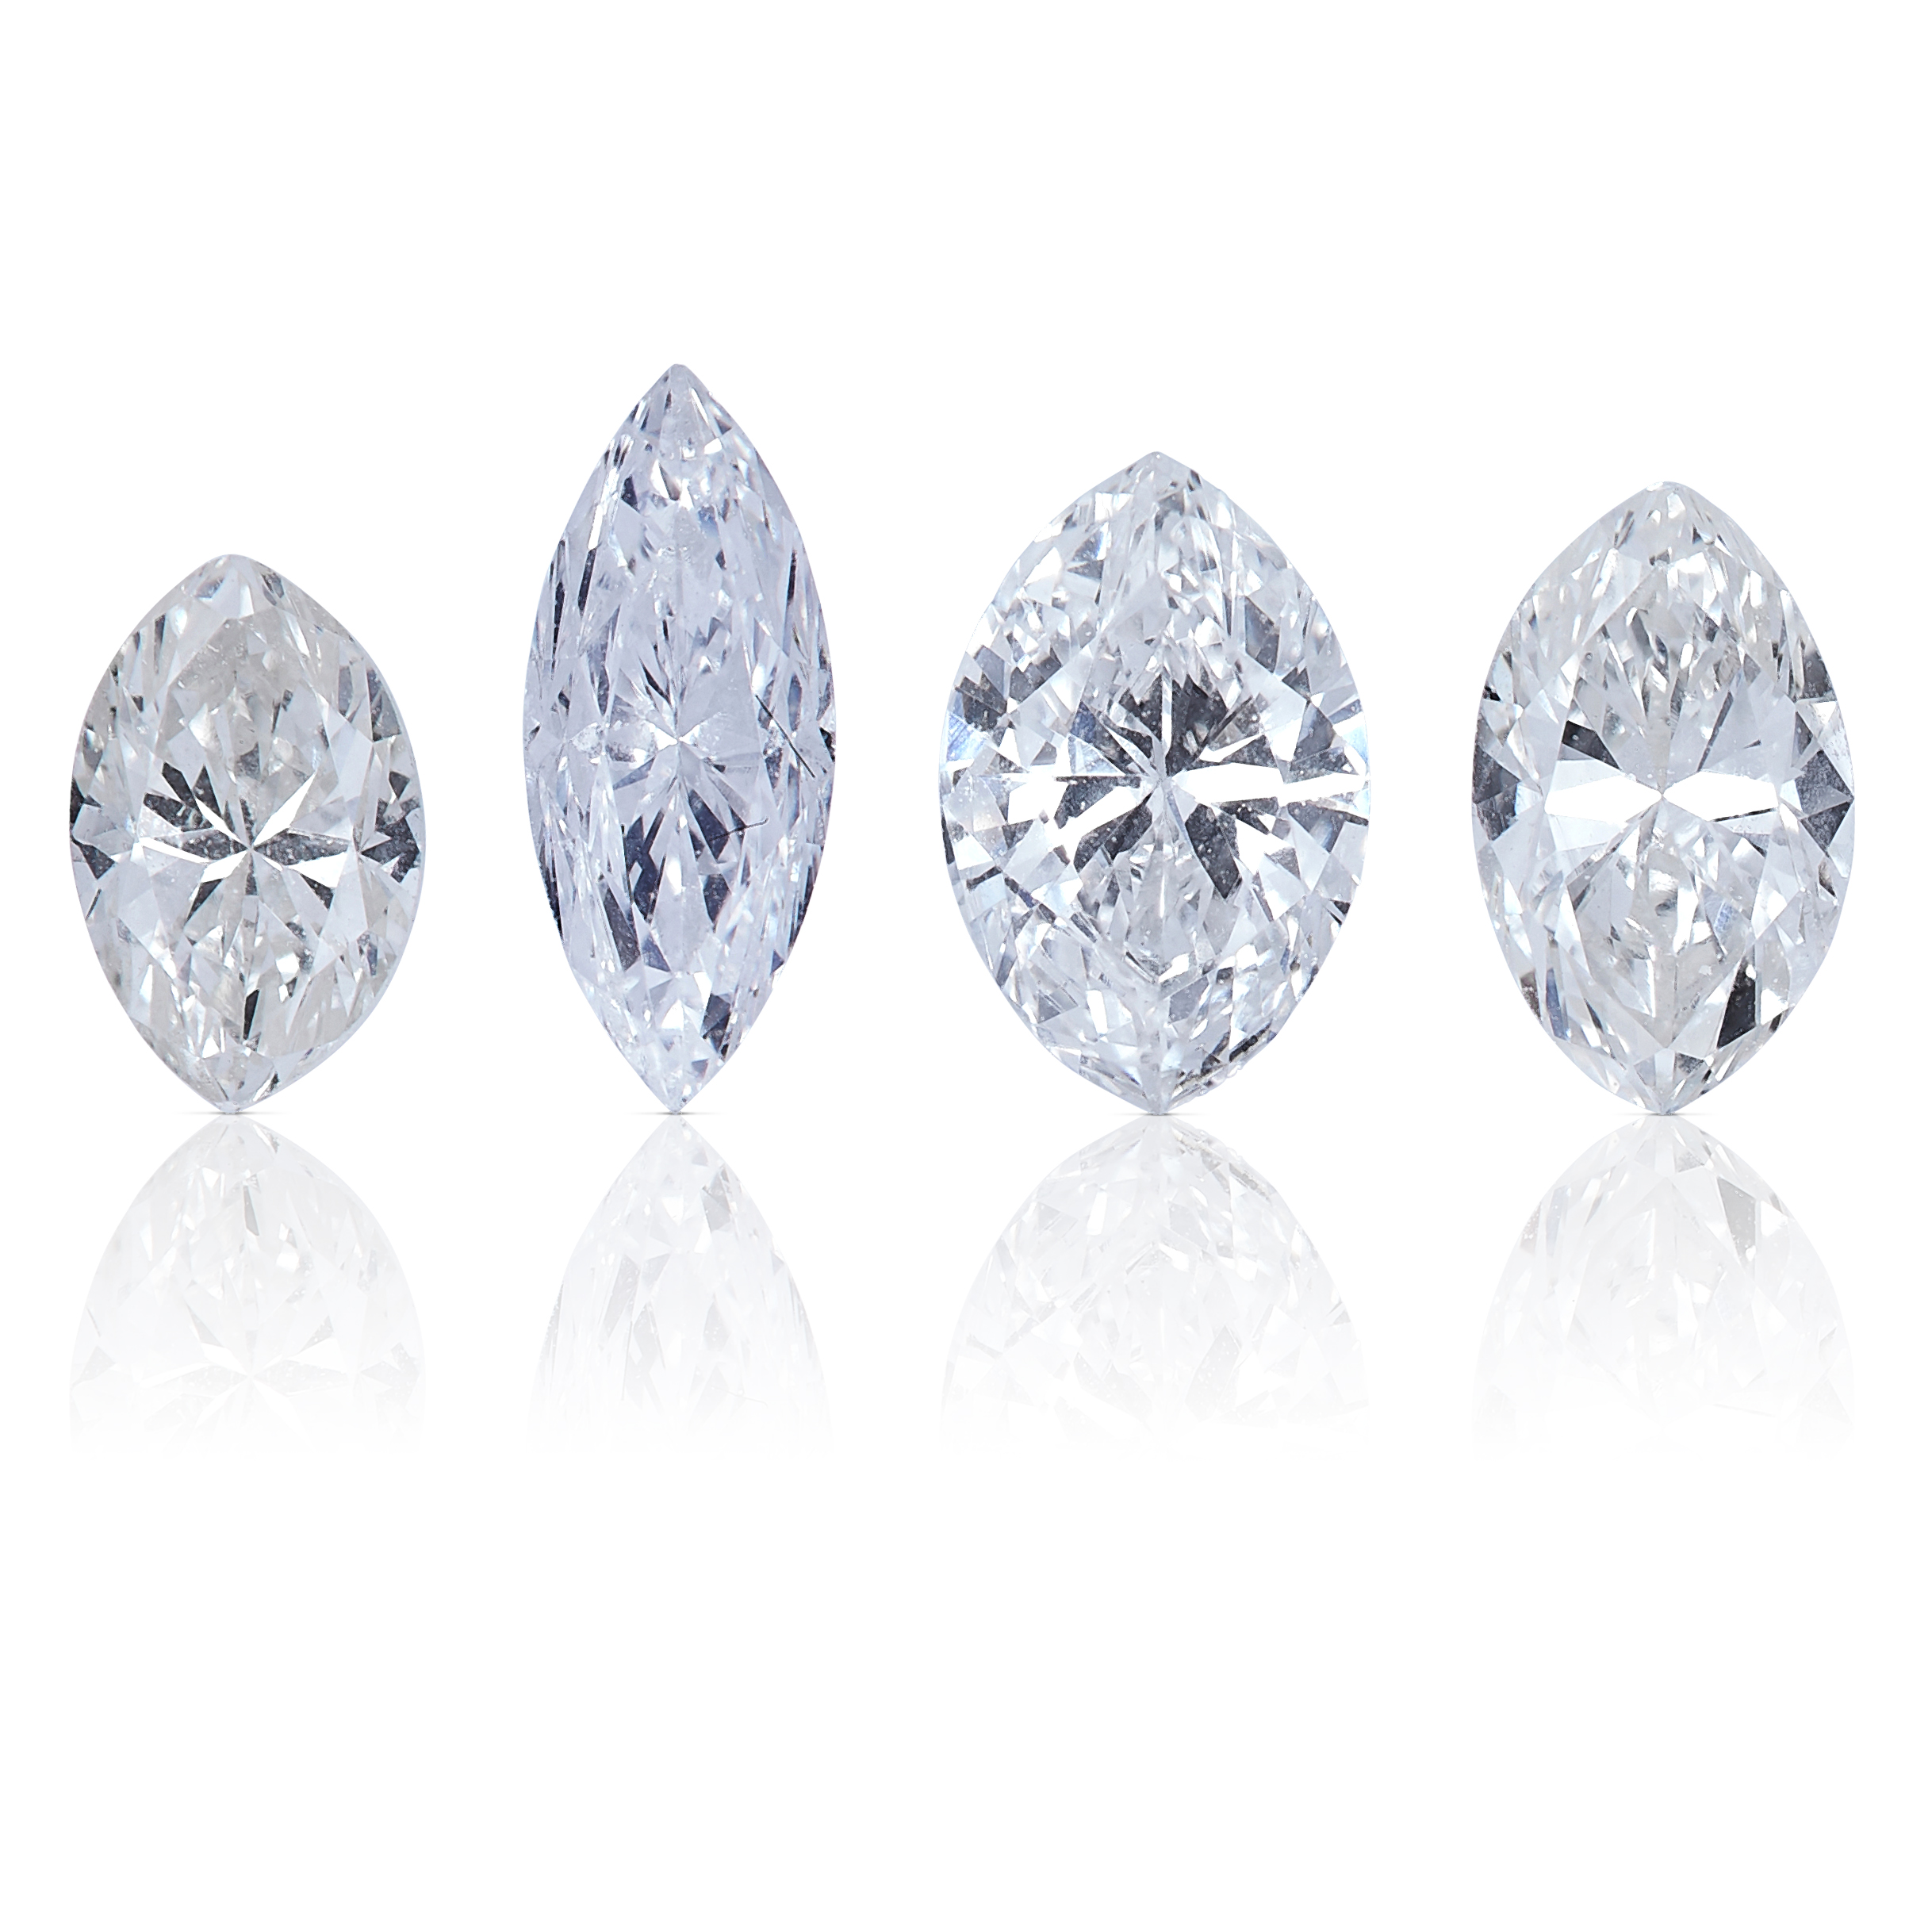 FOUR MARQUISE CUT DIAMONDS, TOTALLING 0.95cts, UNMOUNTED.